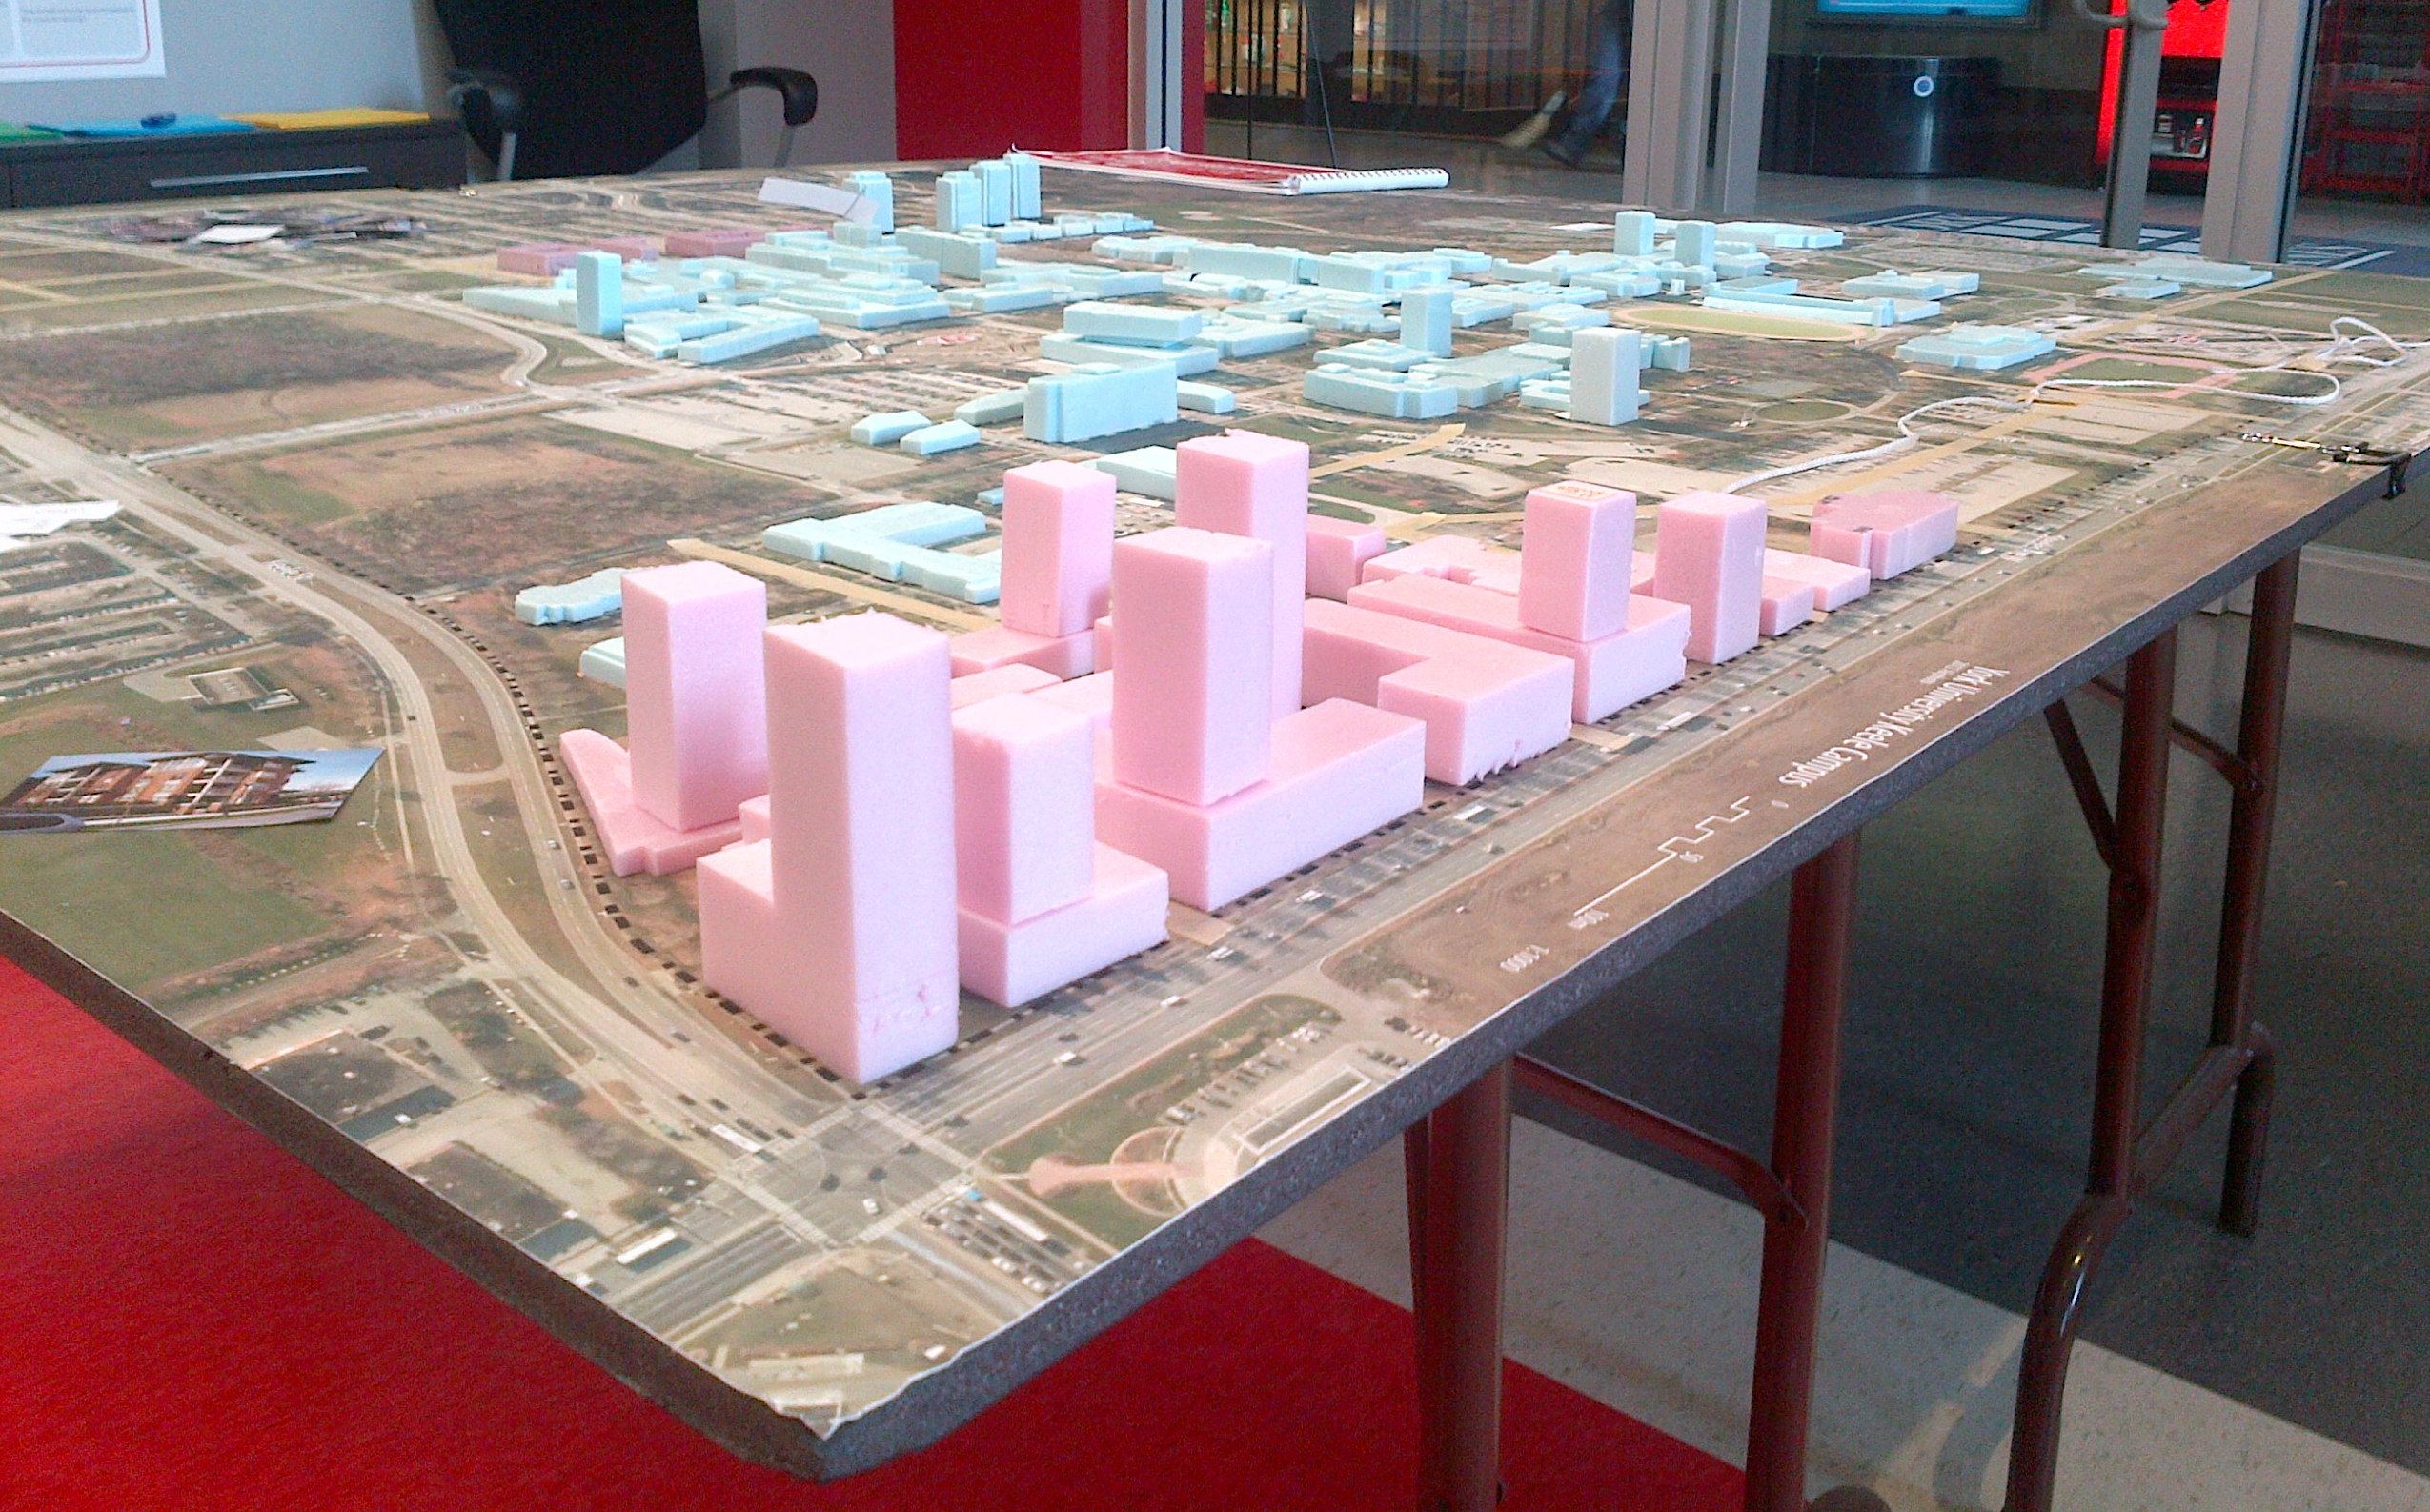 Lands for Learning Model of edge precincts